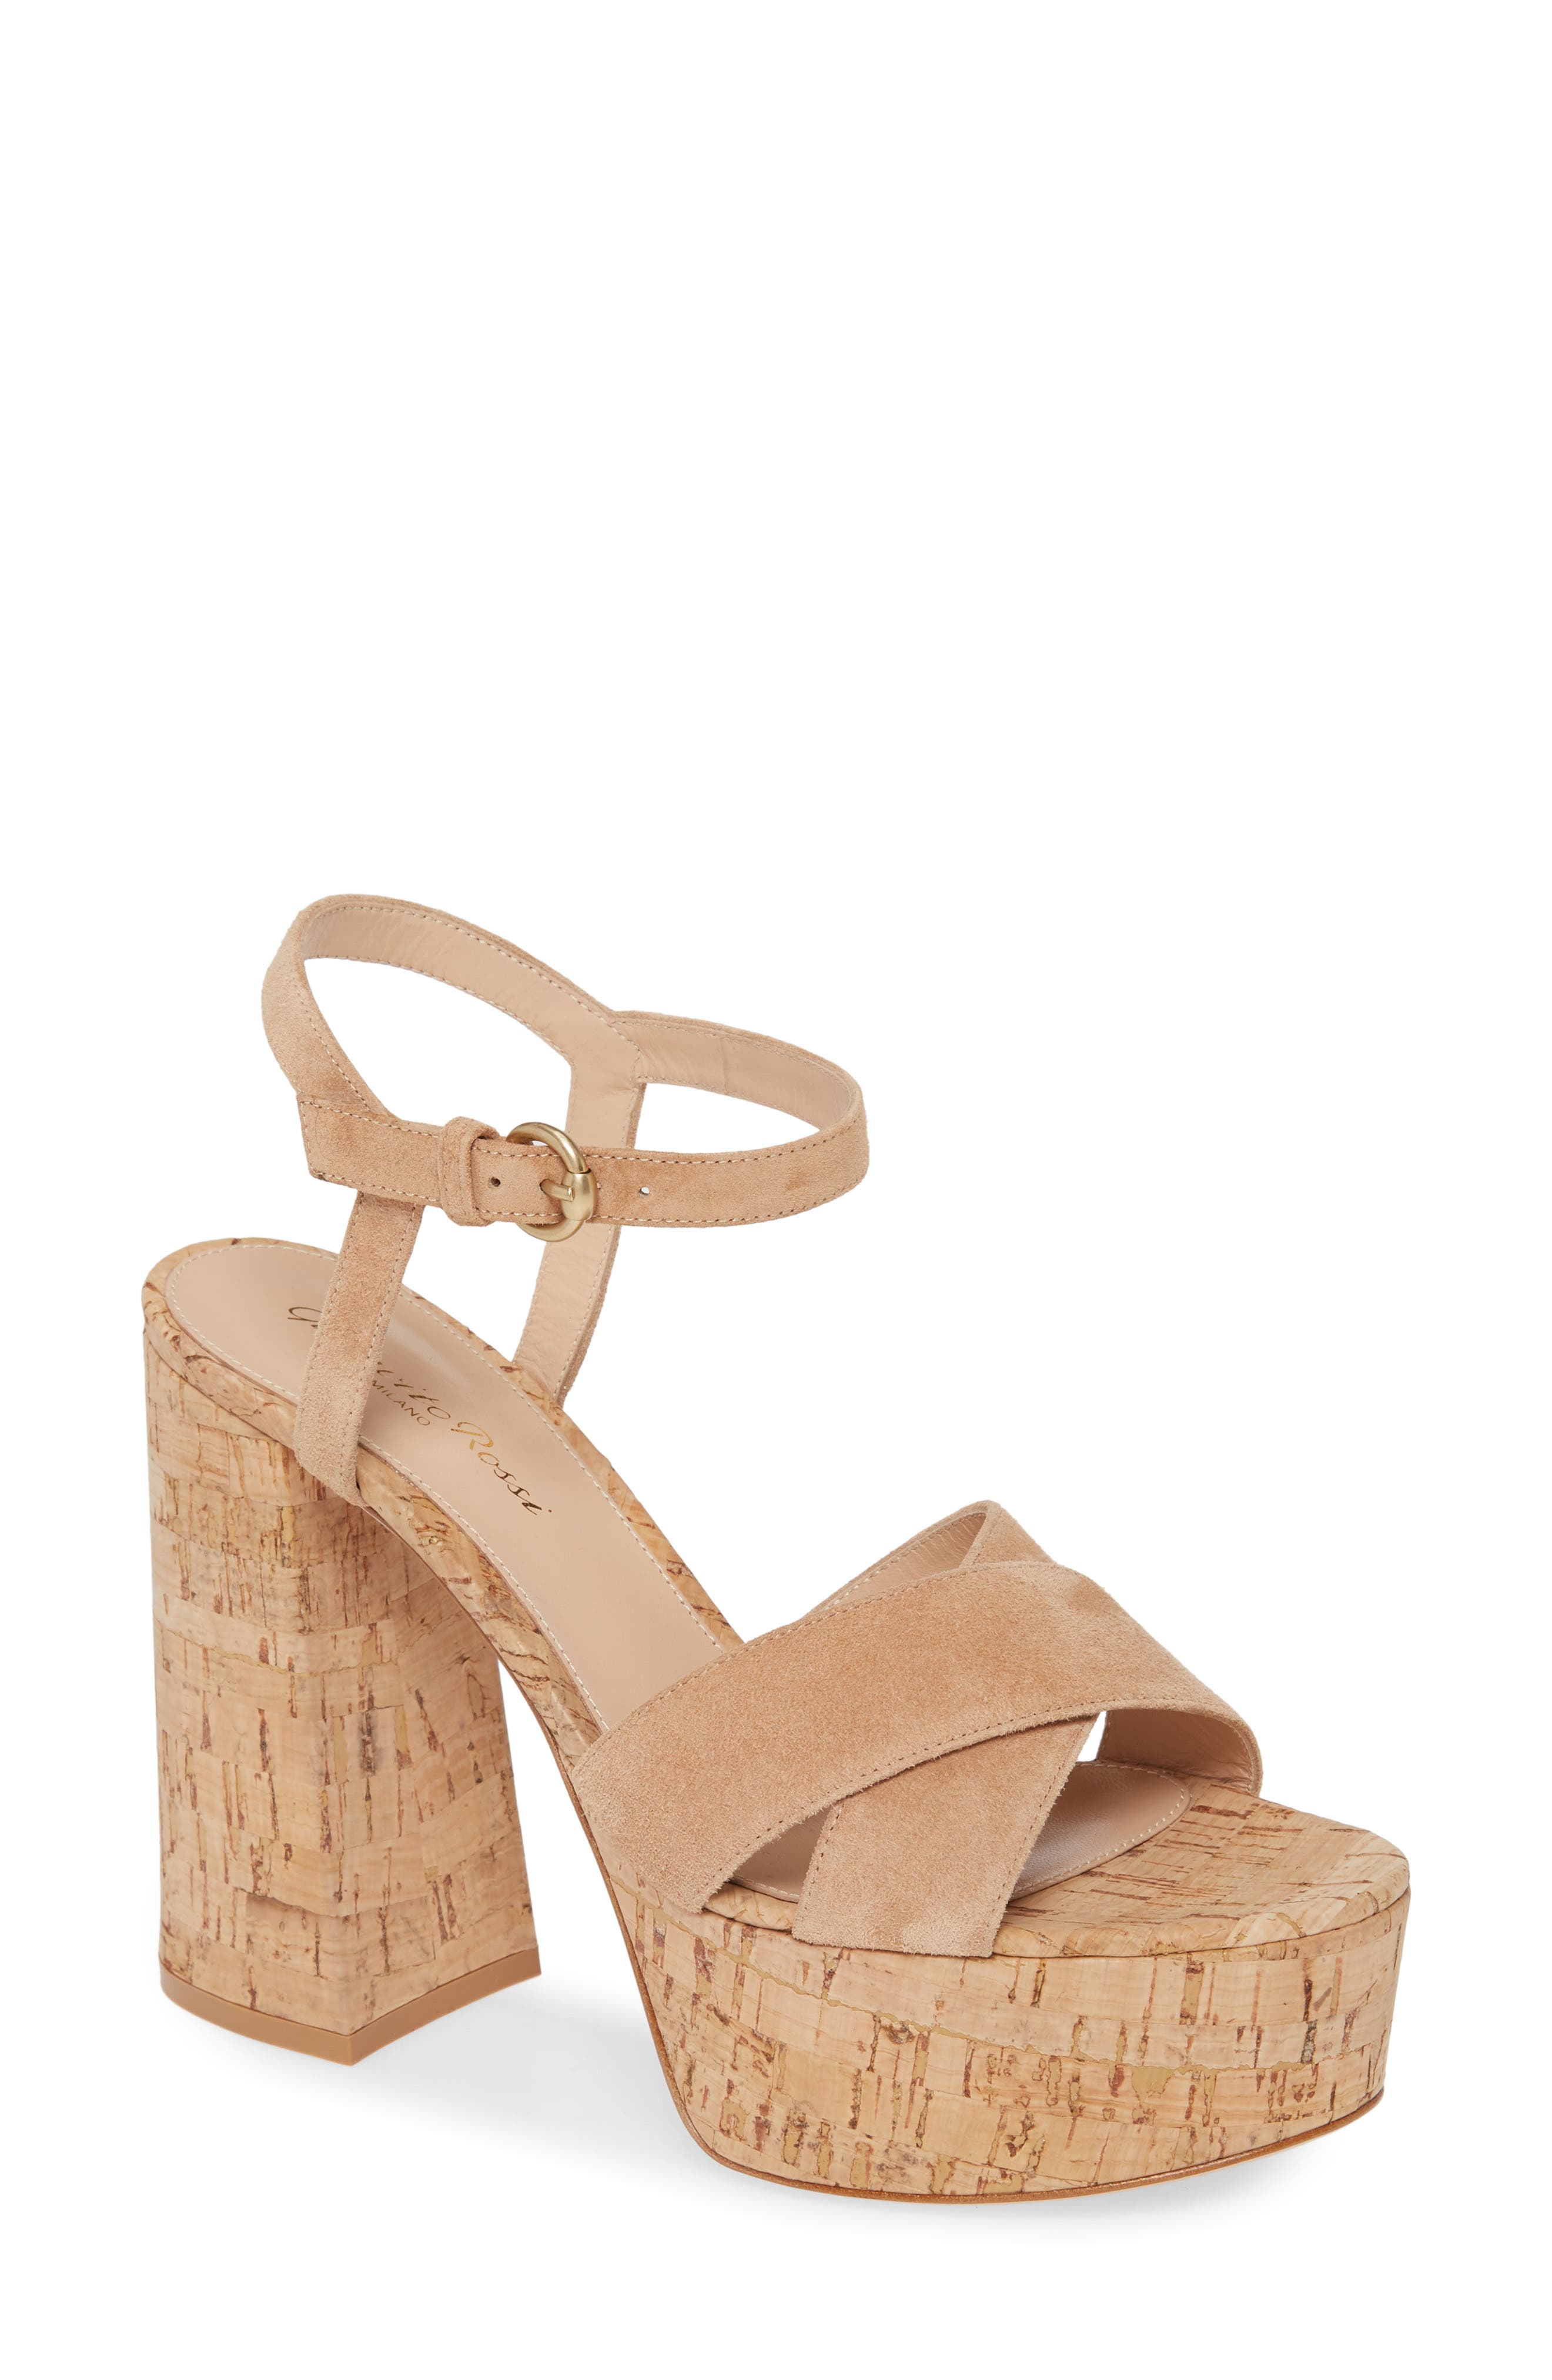 A cork heel and platform dial up the vintage influence of a lofty sandal topped by smooth suede straps. Style Name: Gianvito Rossi Strappy Cork Platform Sandal (Women). Style Number: 5960714. Available in stores.